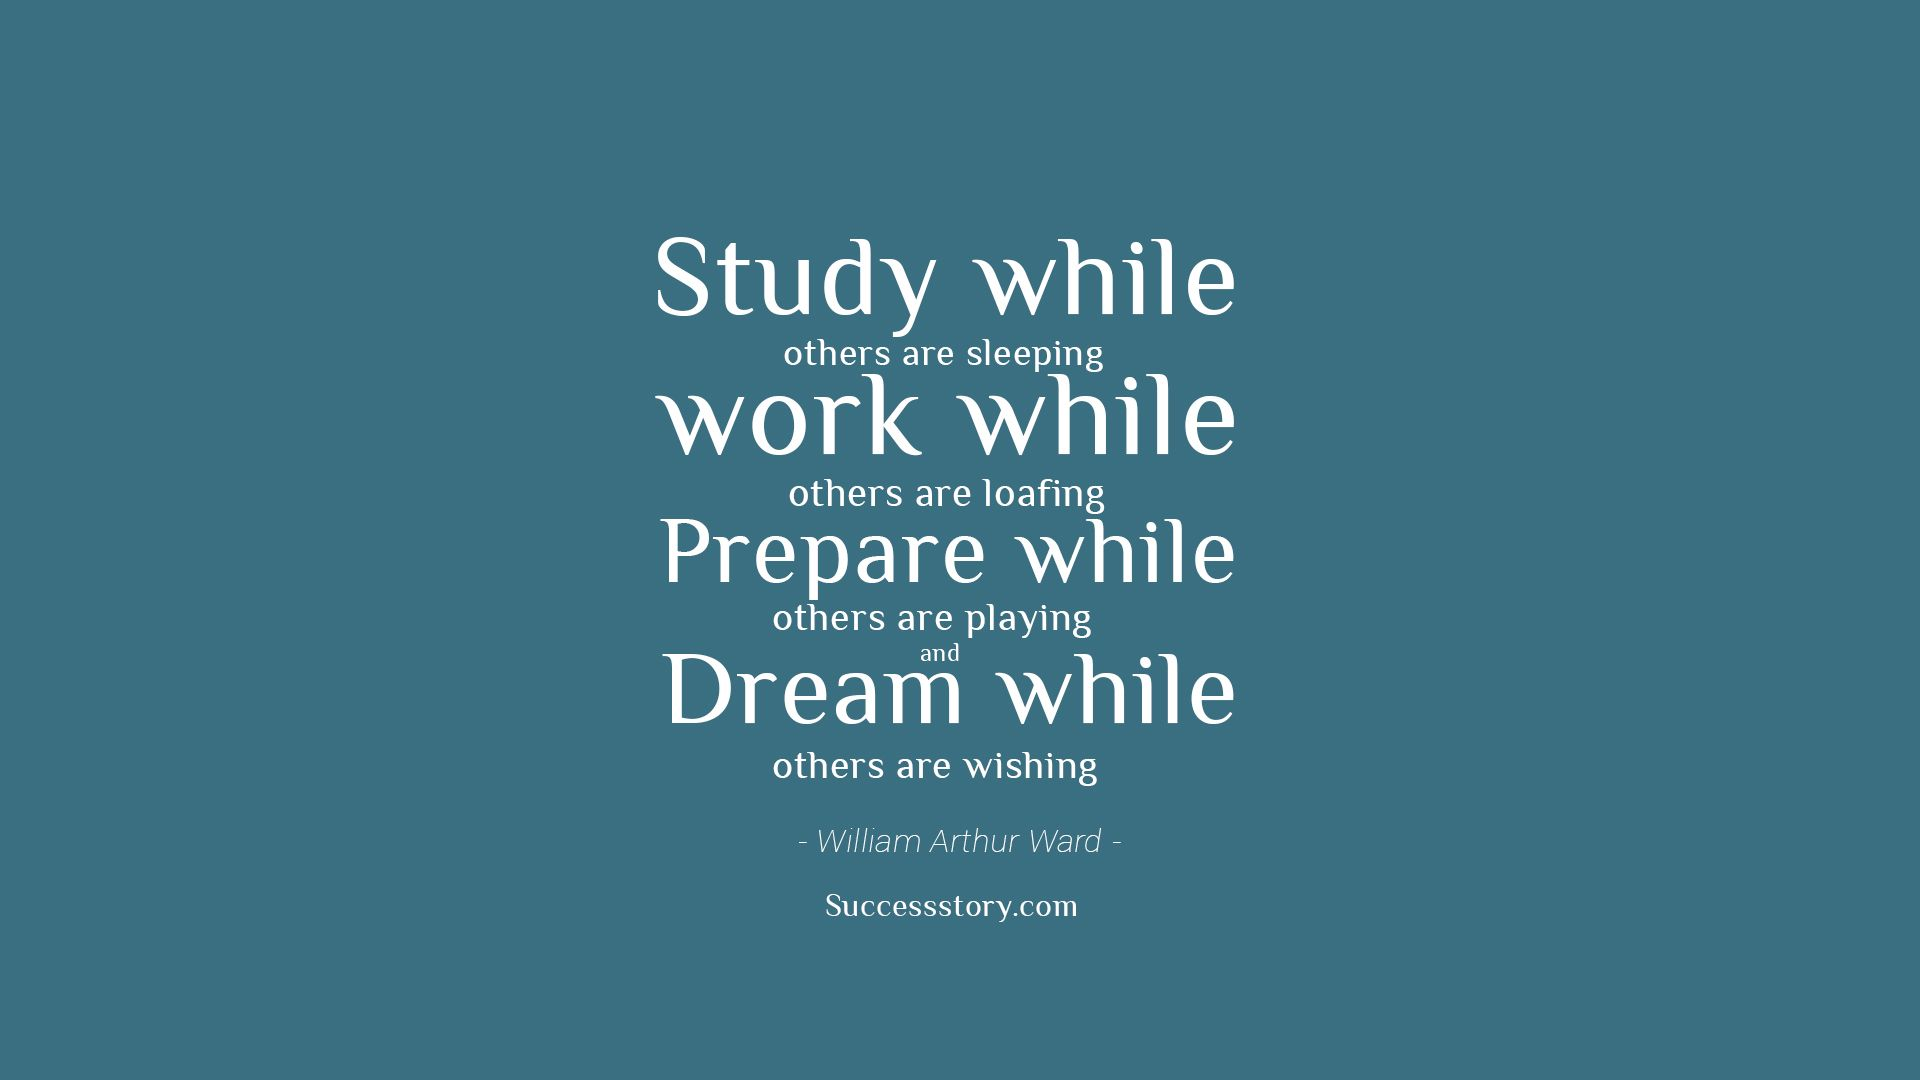 Best Motivational Quotes For Students: Motivational Quotes For Students Studying